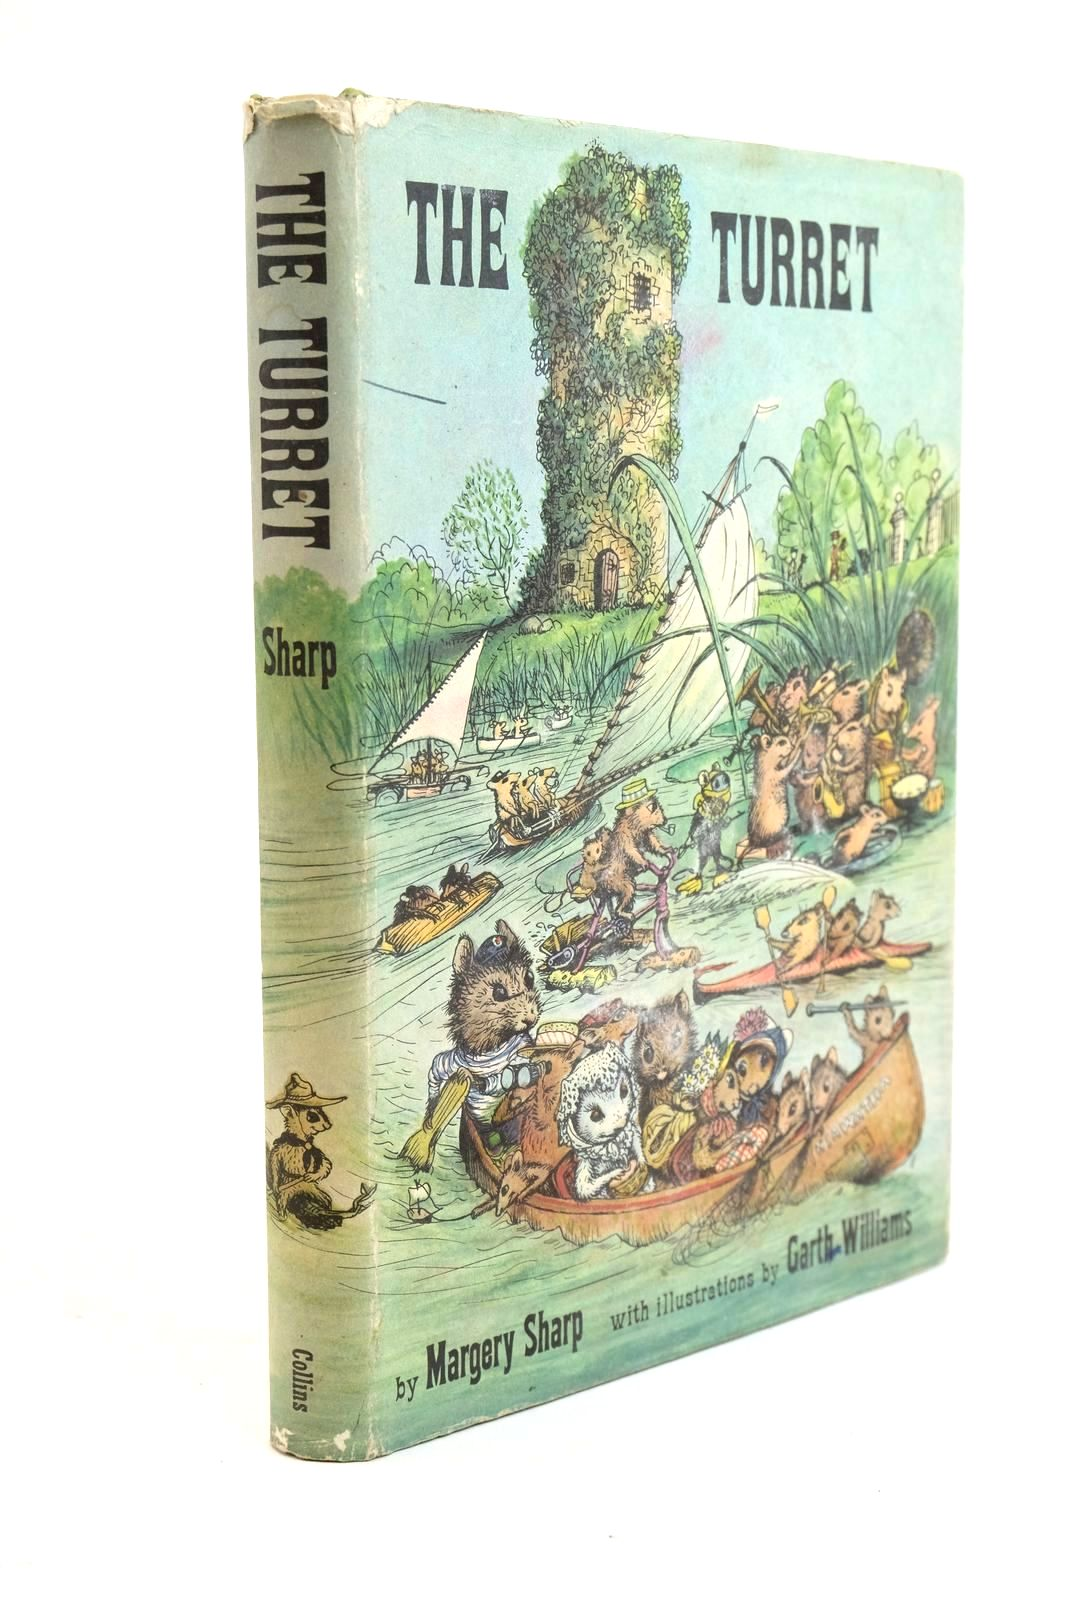 Photo of THE TURRET written by Sharp, Margery illustrated by Williams, Garth published by Collins (STOCK CODE: 1321512)  for sale by Stella & Rose's Books